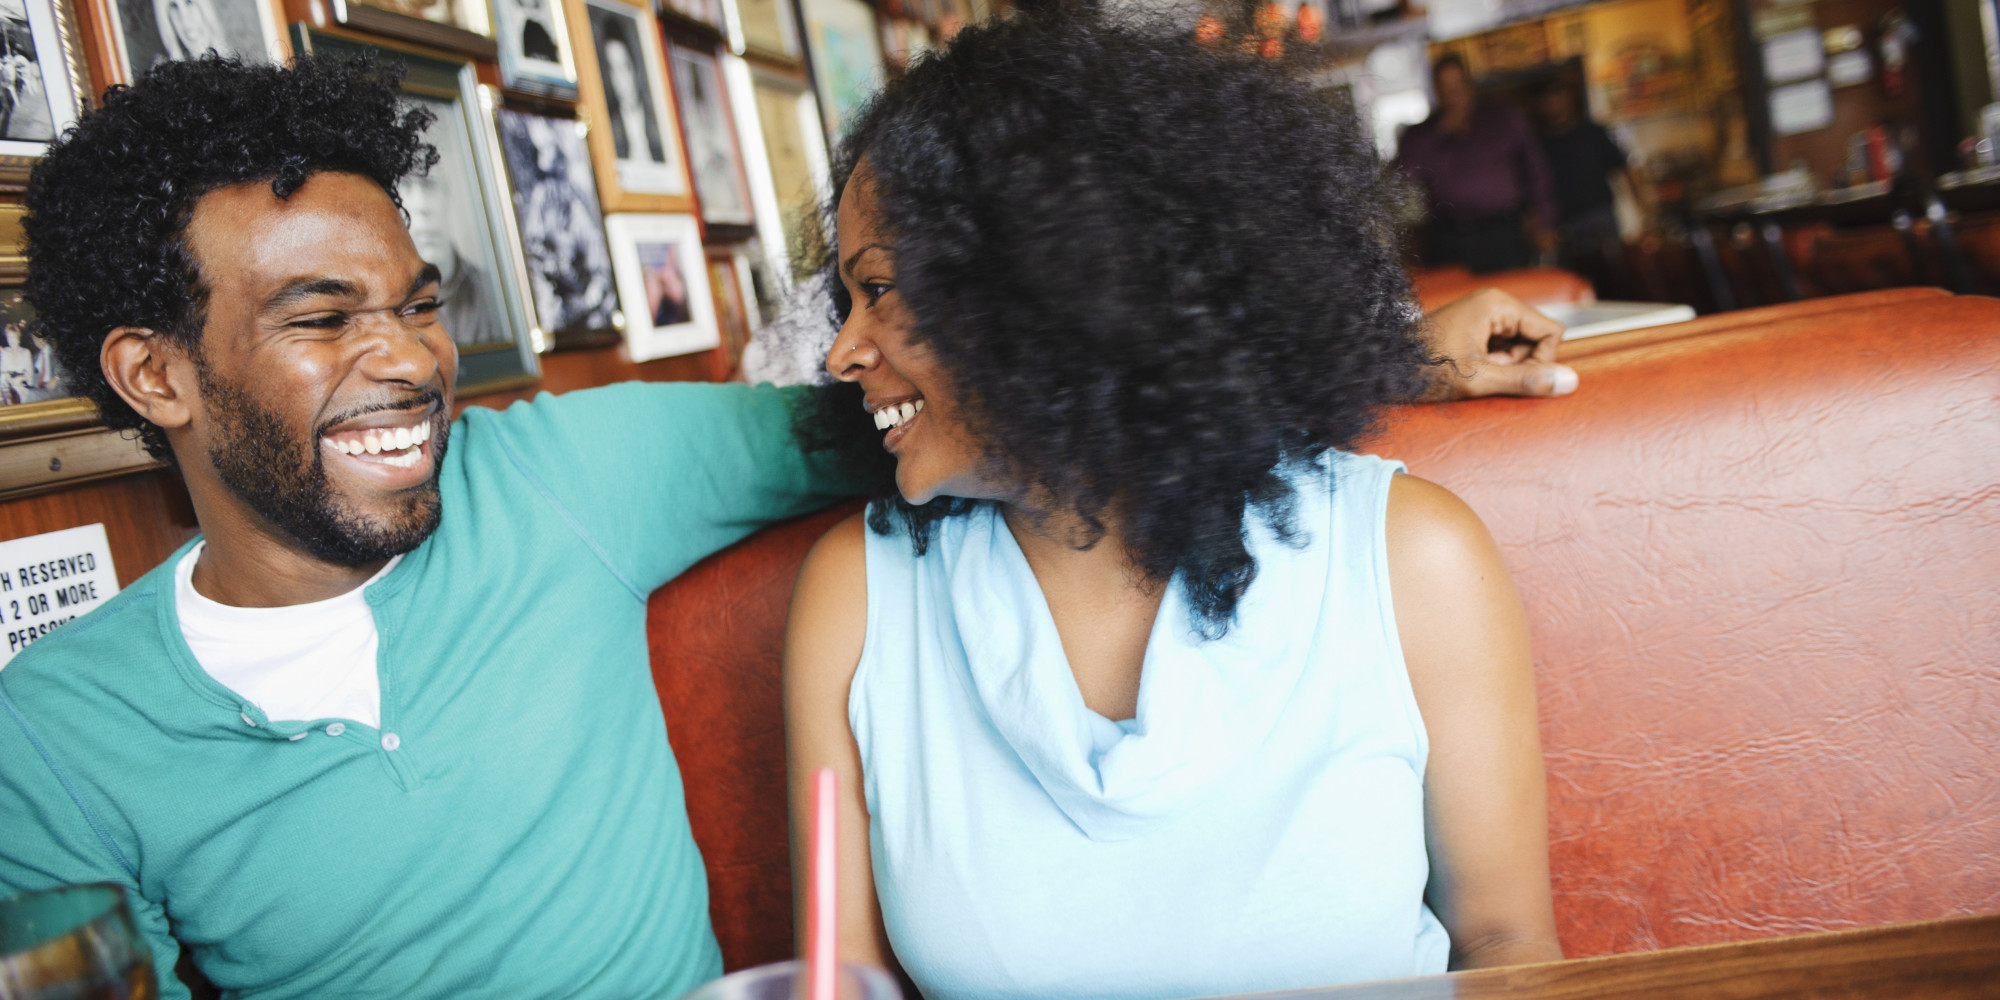 7 Things to Remember If You're a White Person Dating a Person of Color